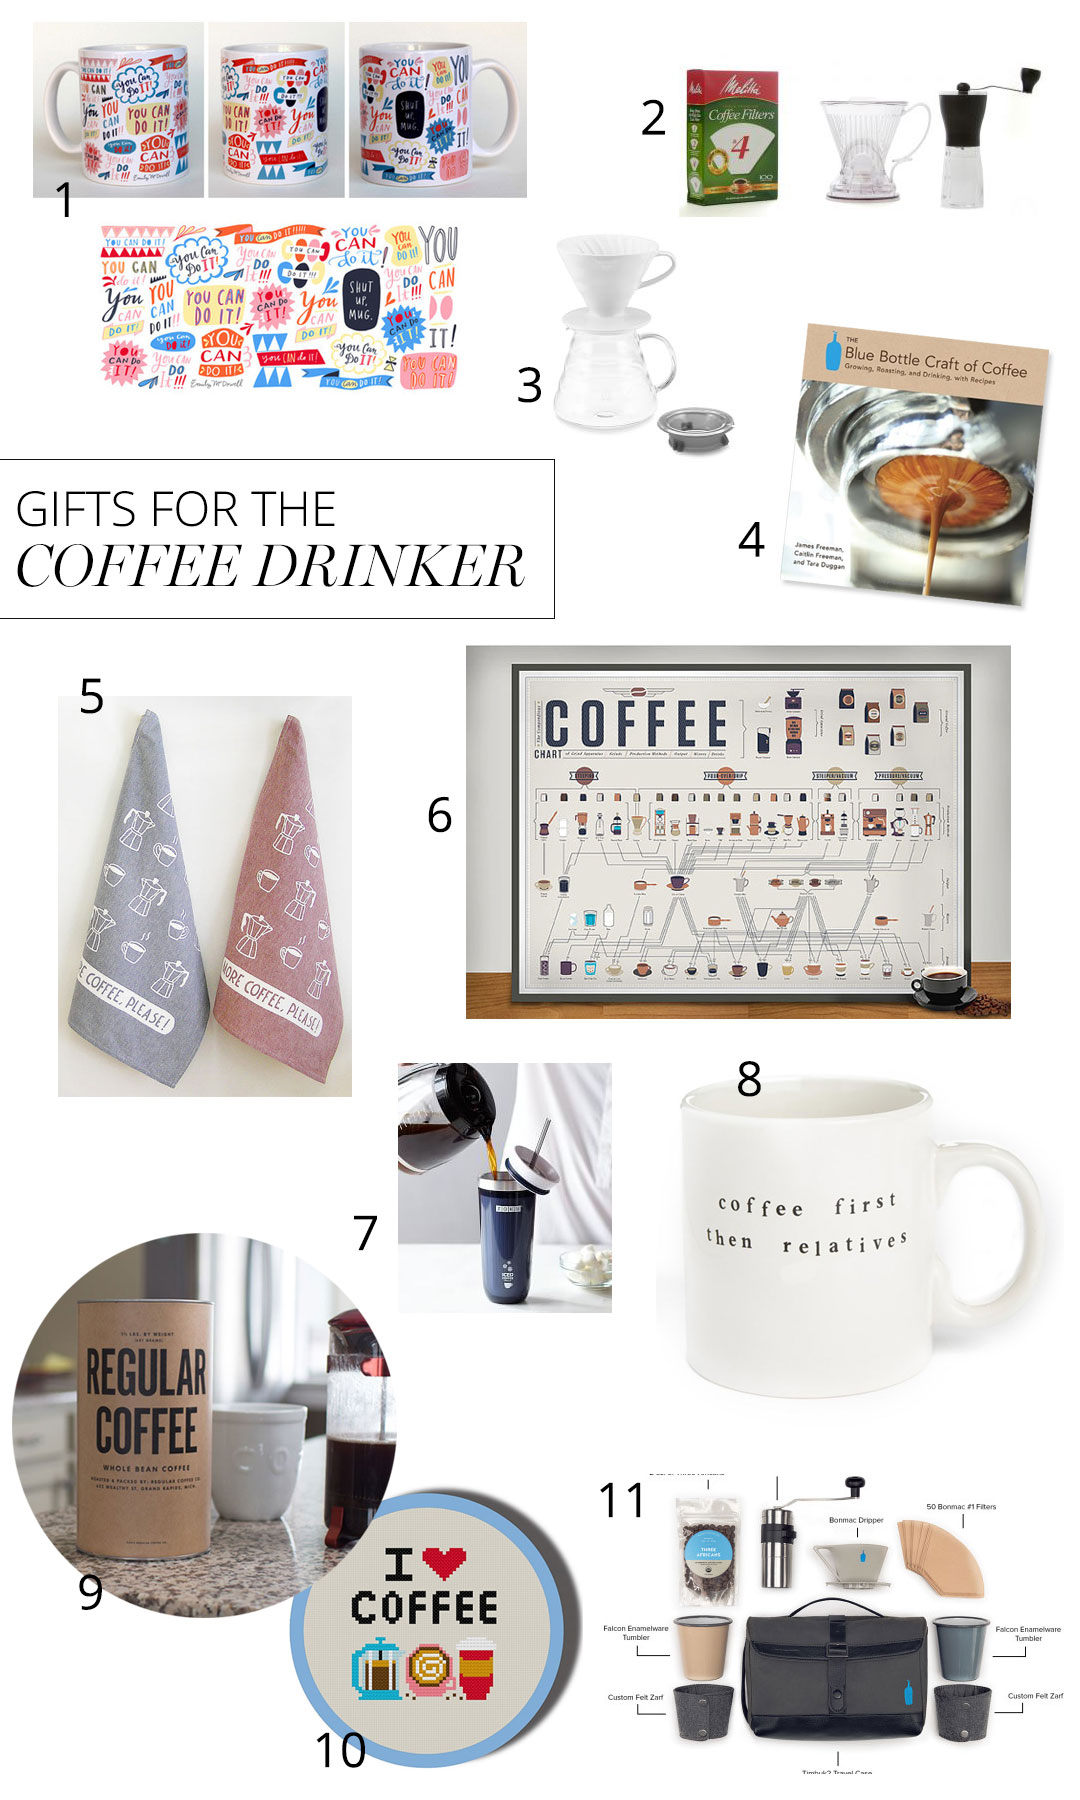 Gift Guide for Coffee Drinkers